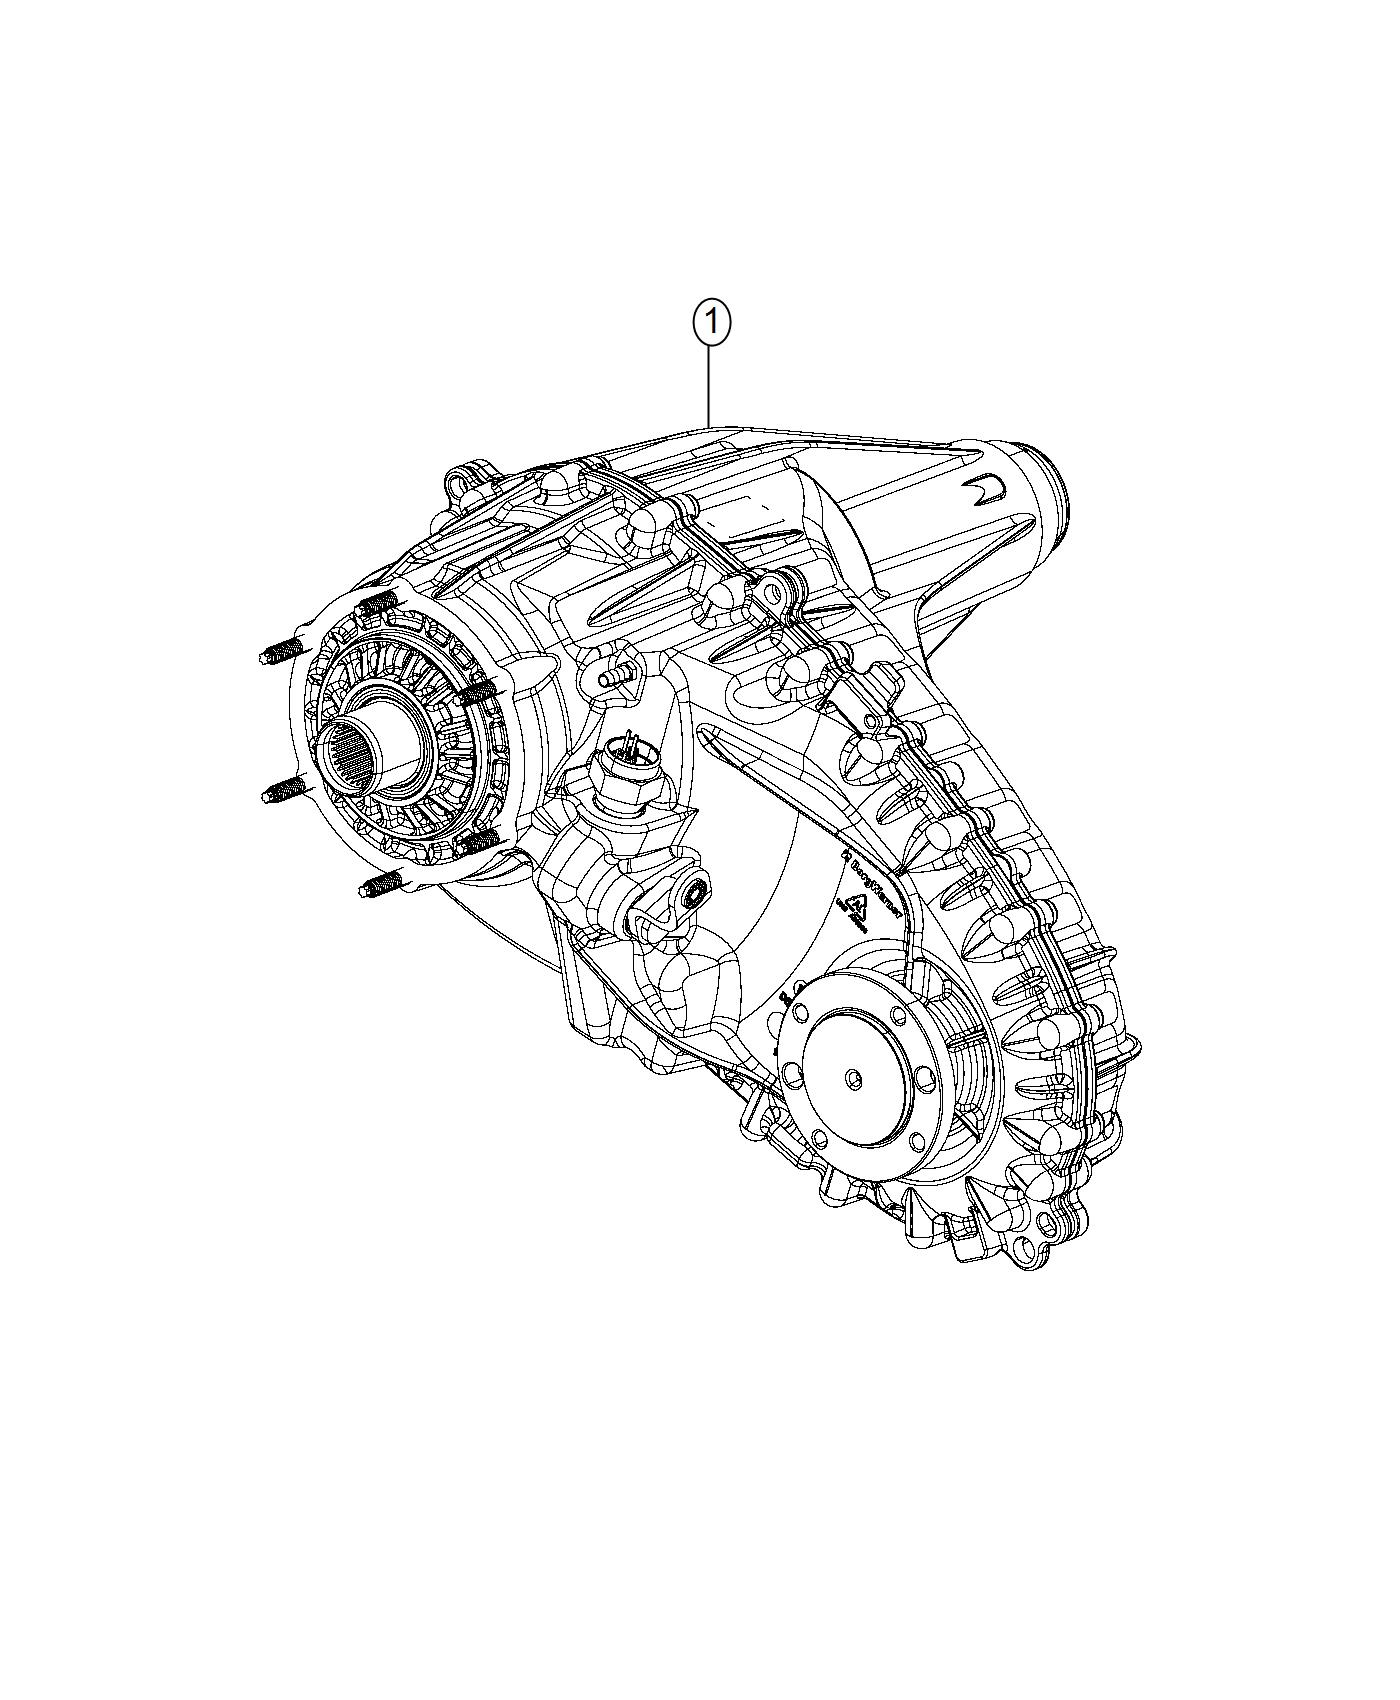 Ram Transfer Case Bw 44 47 Remanufactured